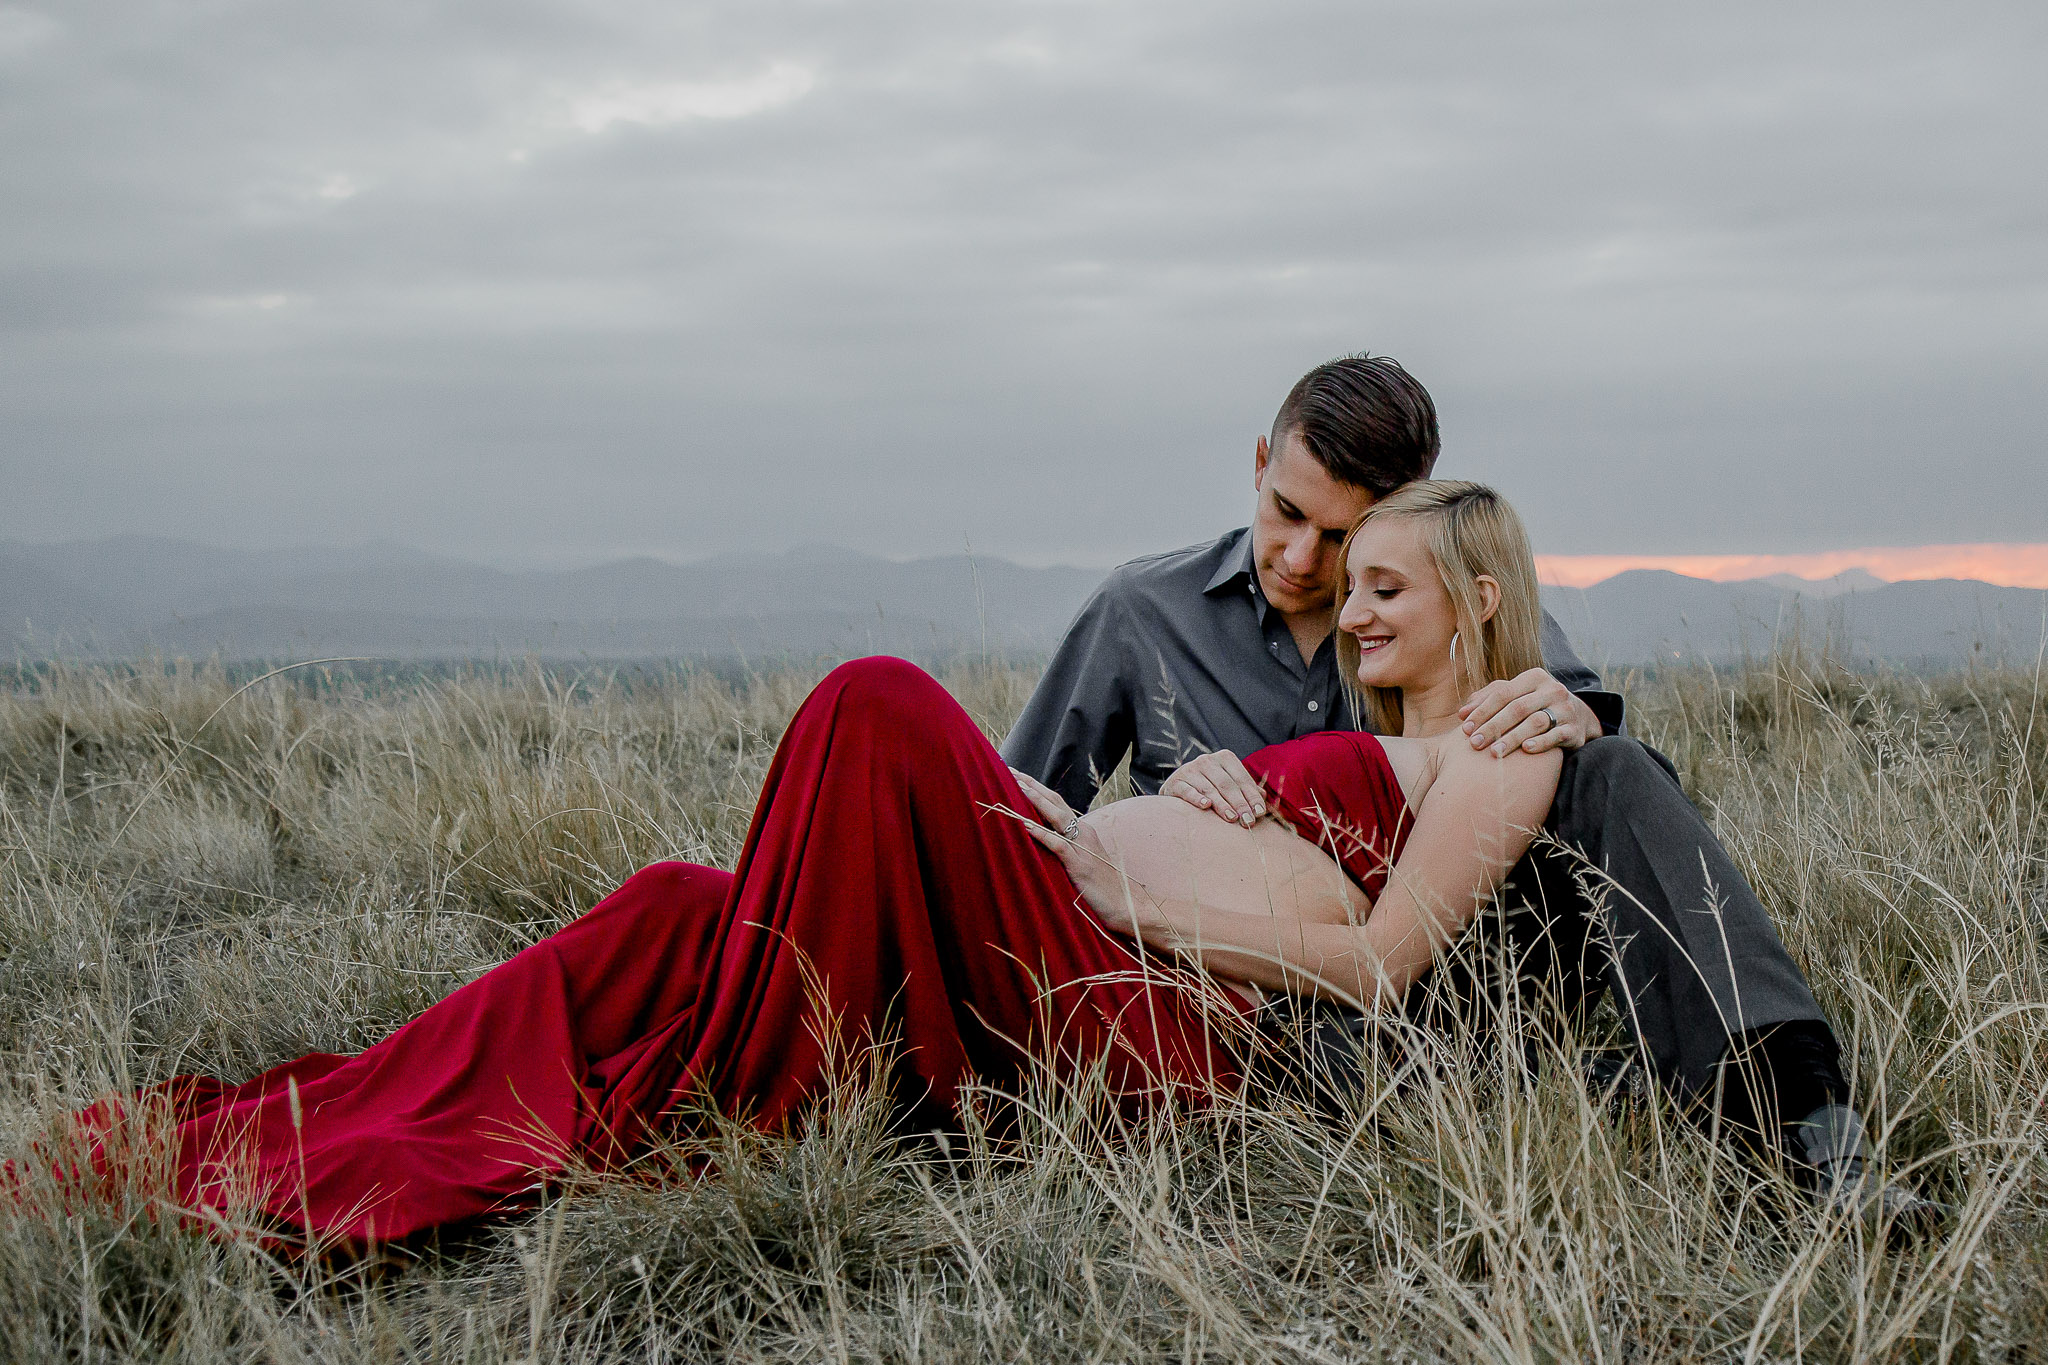 Romantic-Maternity-Couple-Field-Laying-Down-Red-Dress-Littleton.jpg